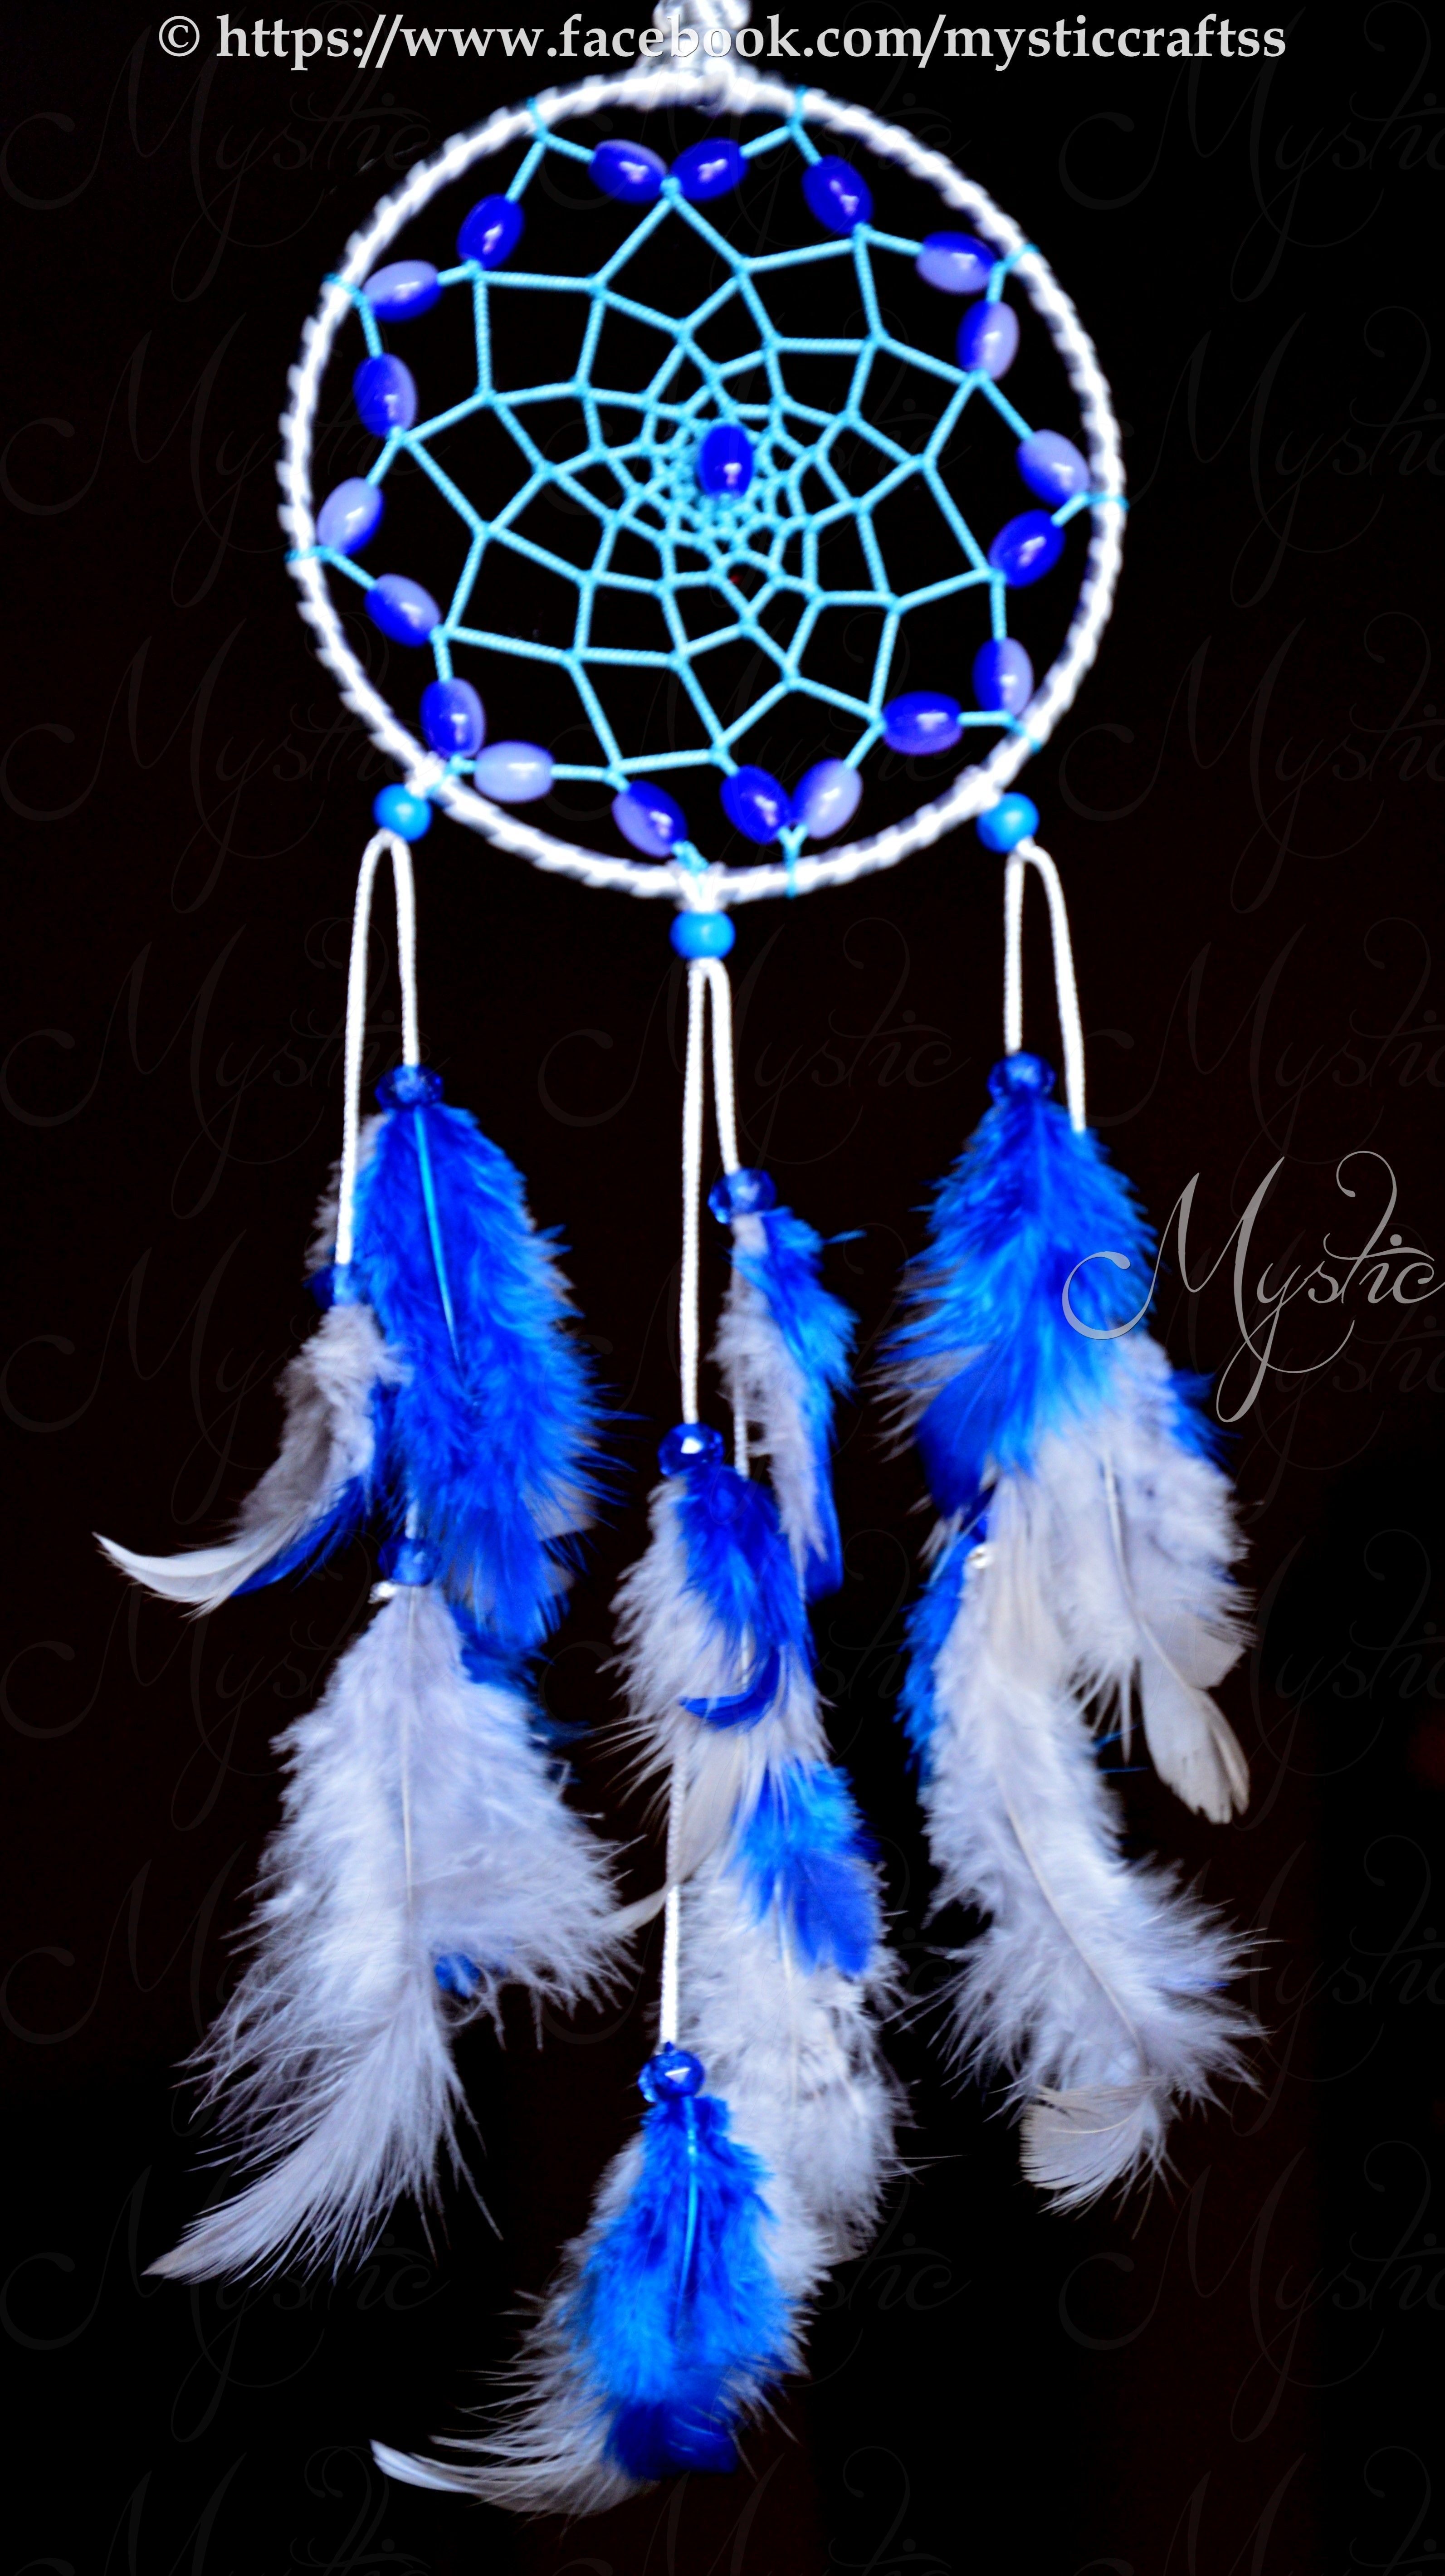 Pin by Terri Wright on DIY and crafts Dream catcher boho